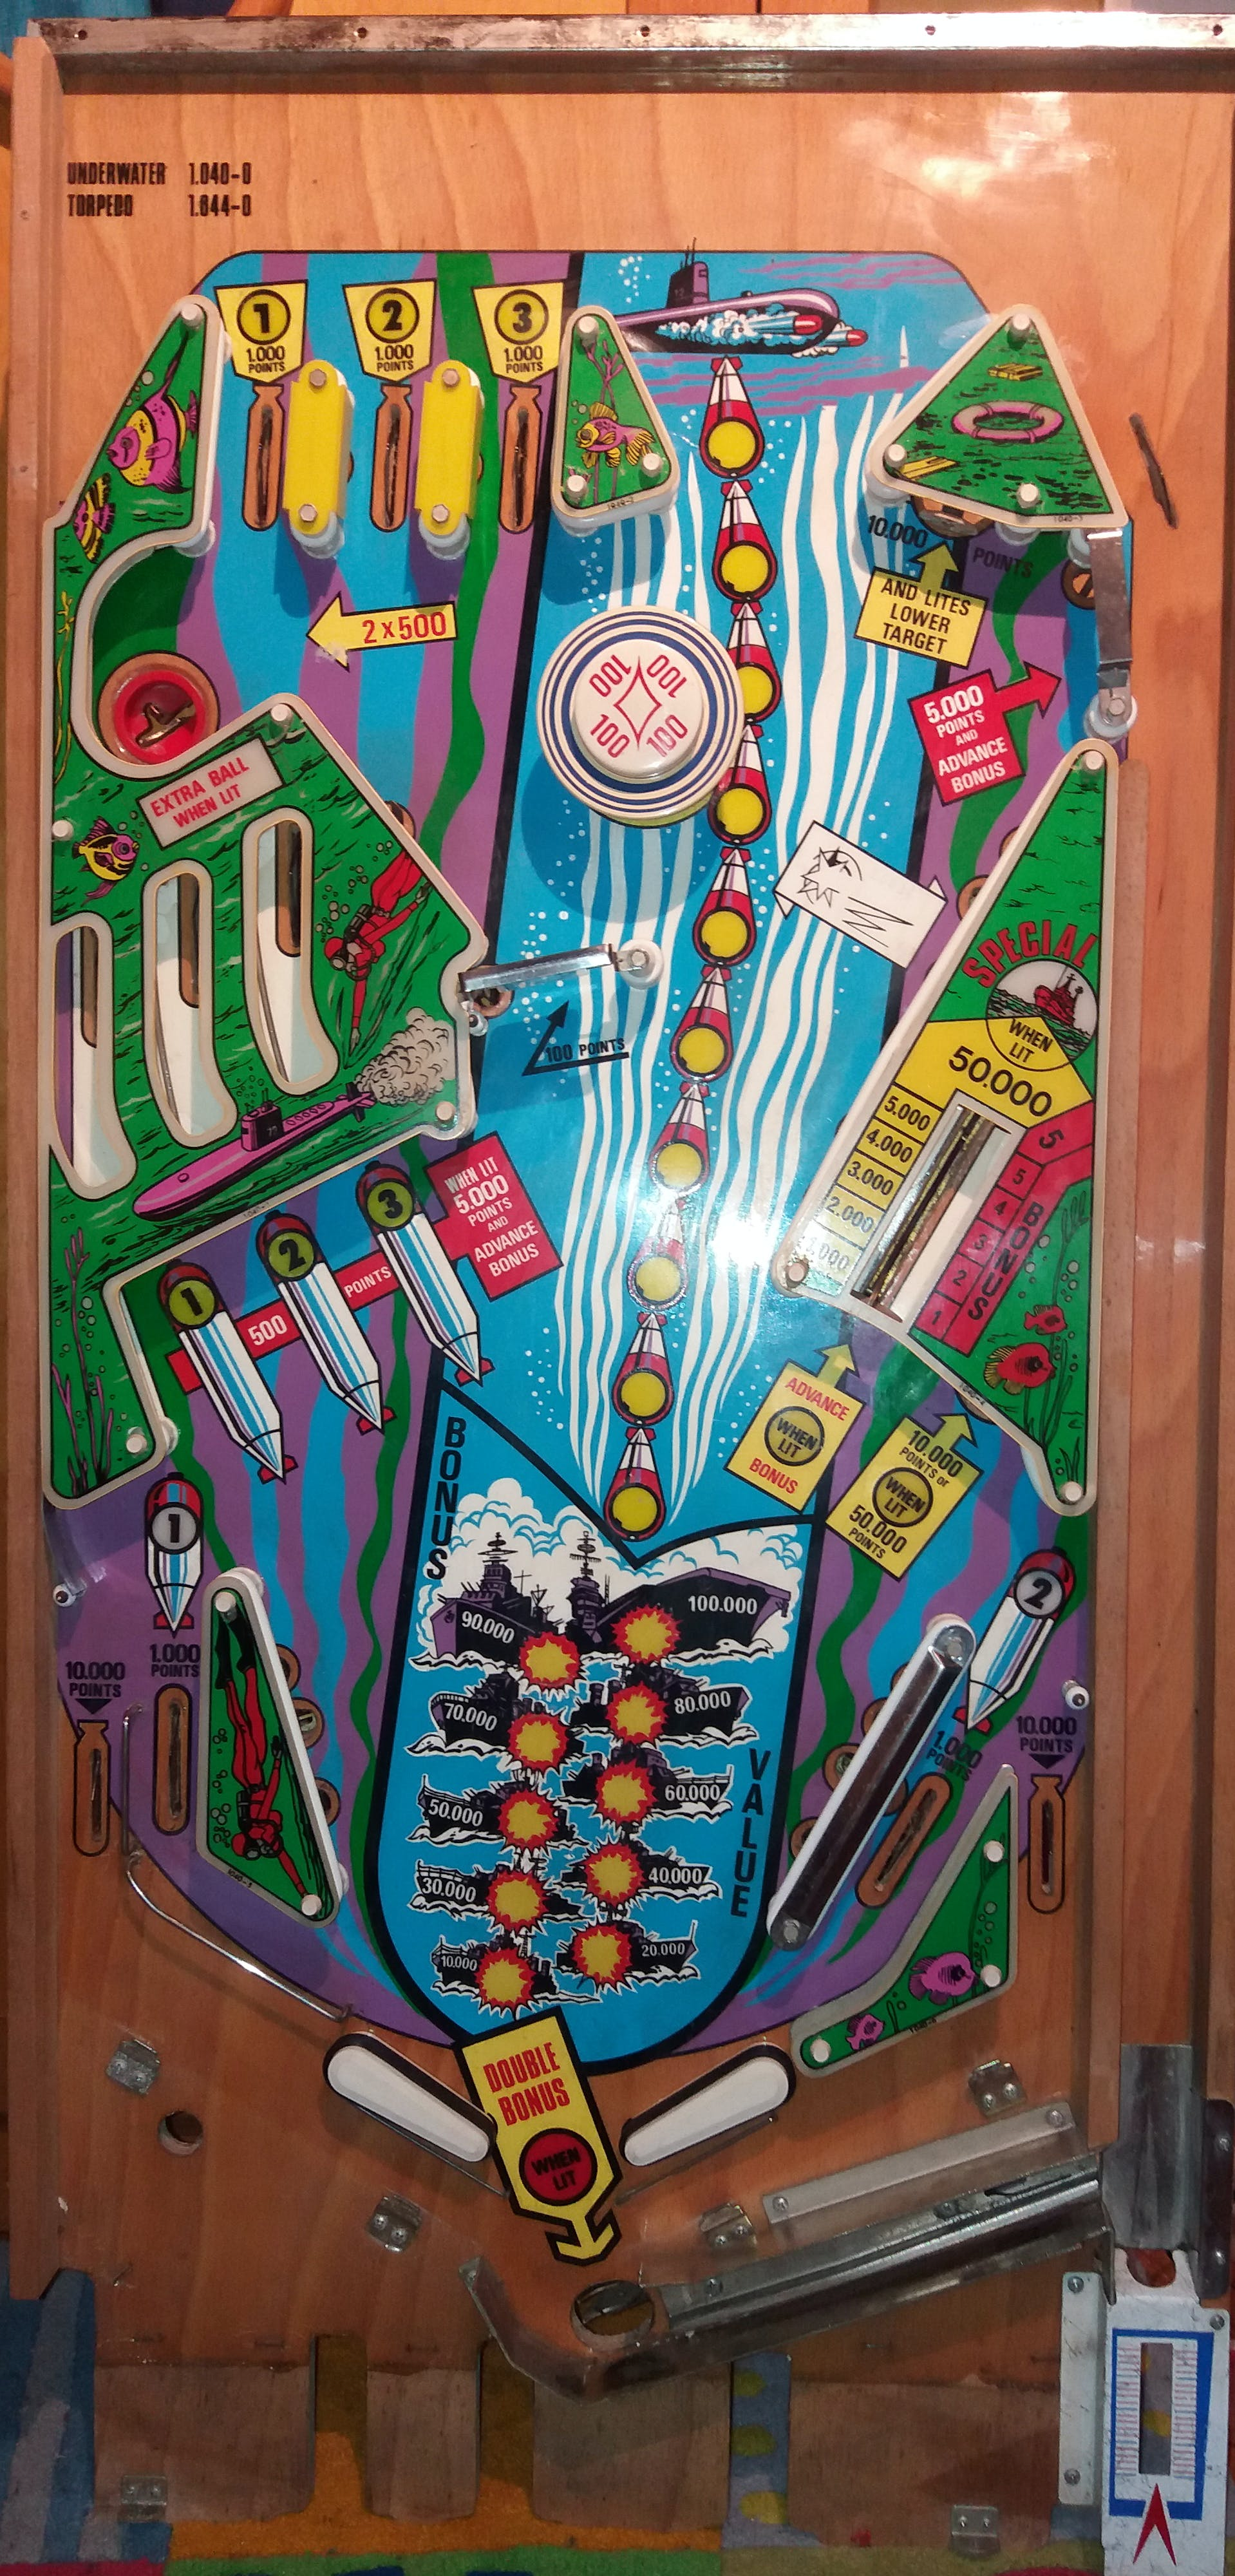 Old playfield